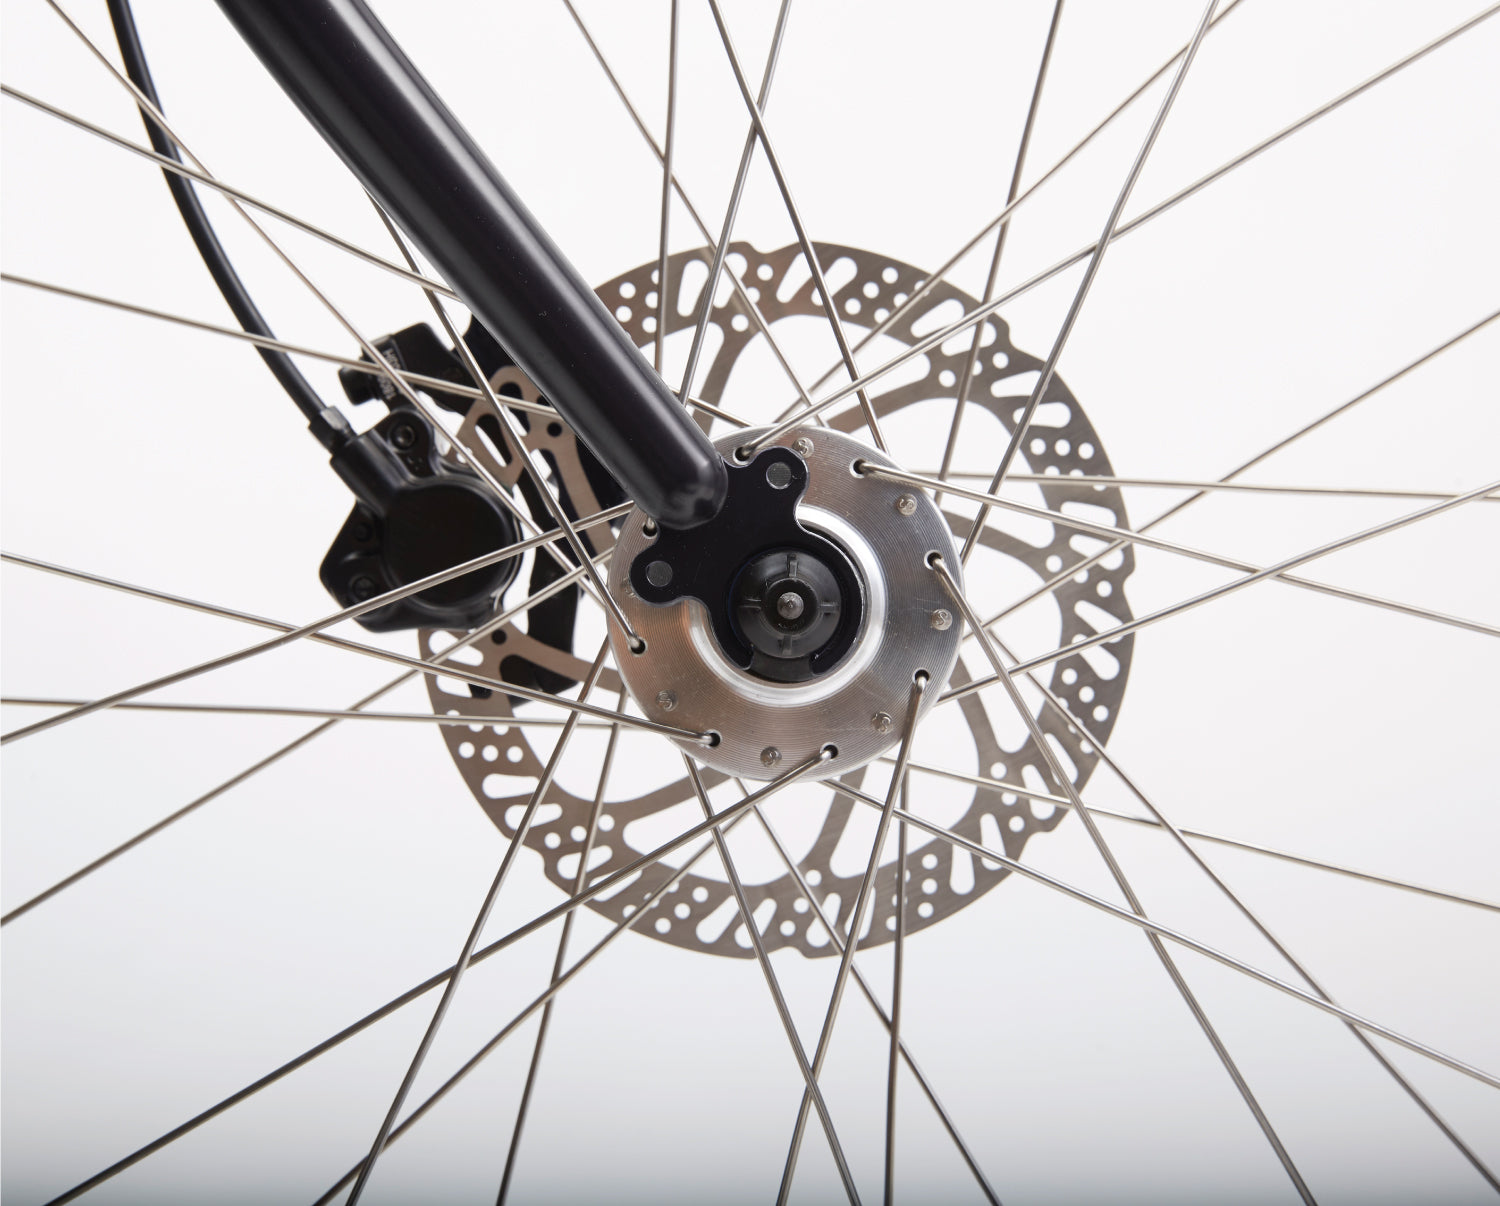 In The Details - Disc Brakes